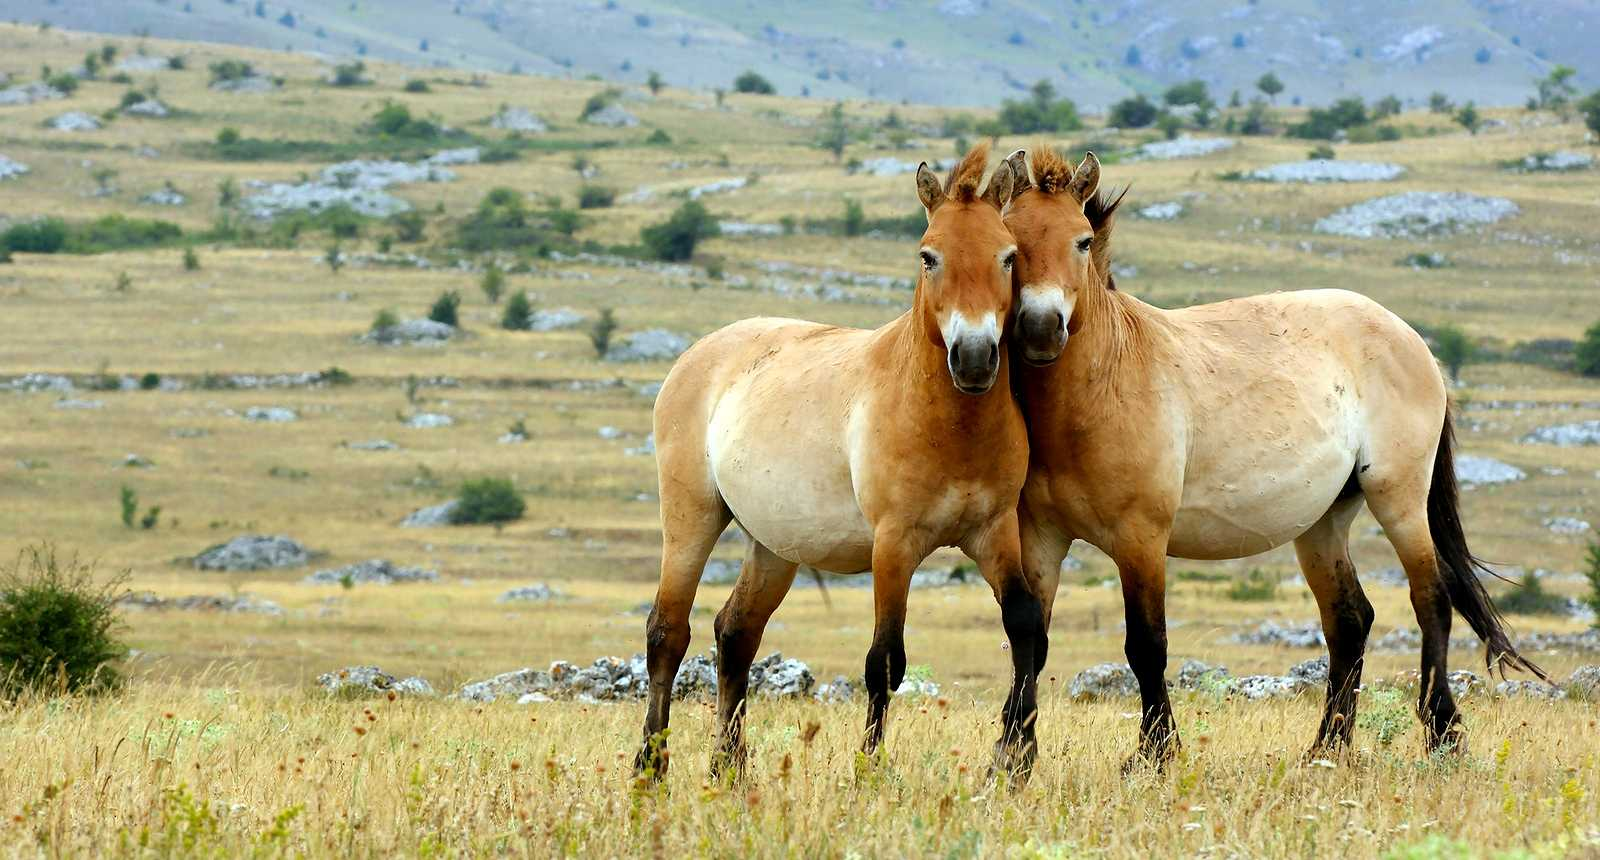 Le cheval de przewalski r introduit en russie eurasiatimes for Multiplication cheval